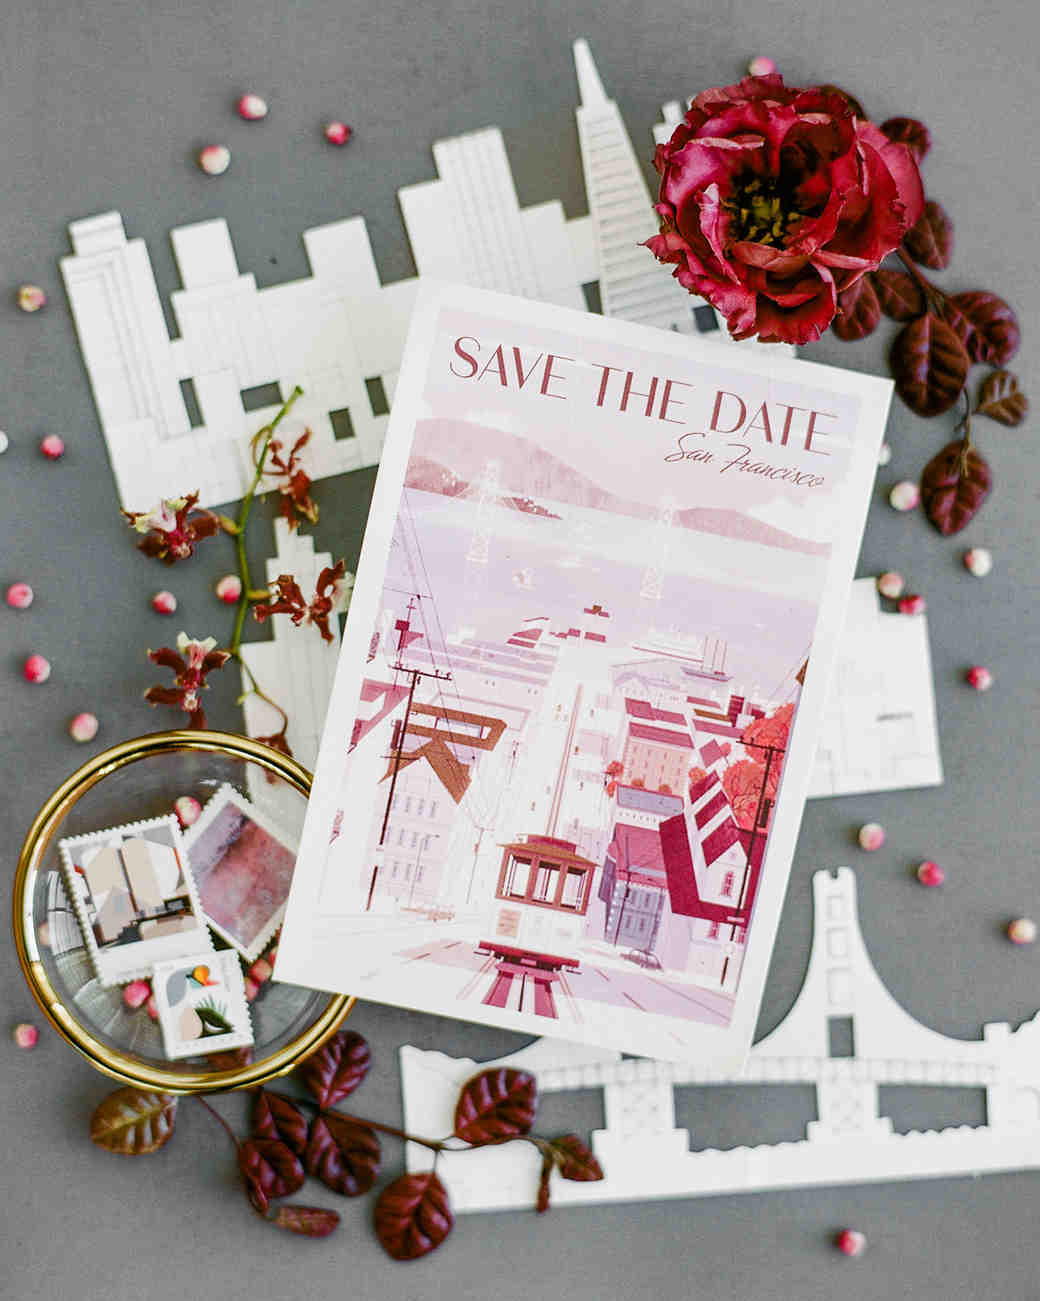 katie andre wedding save the date cards skyline paper cutouts